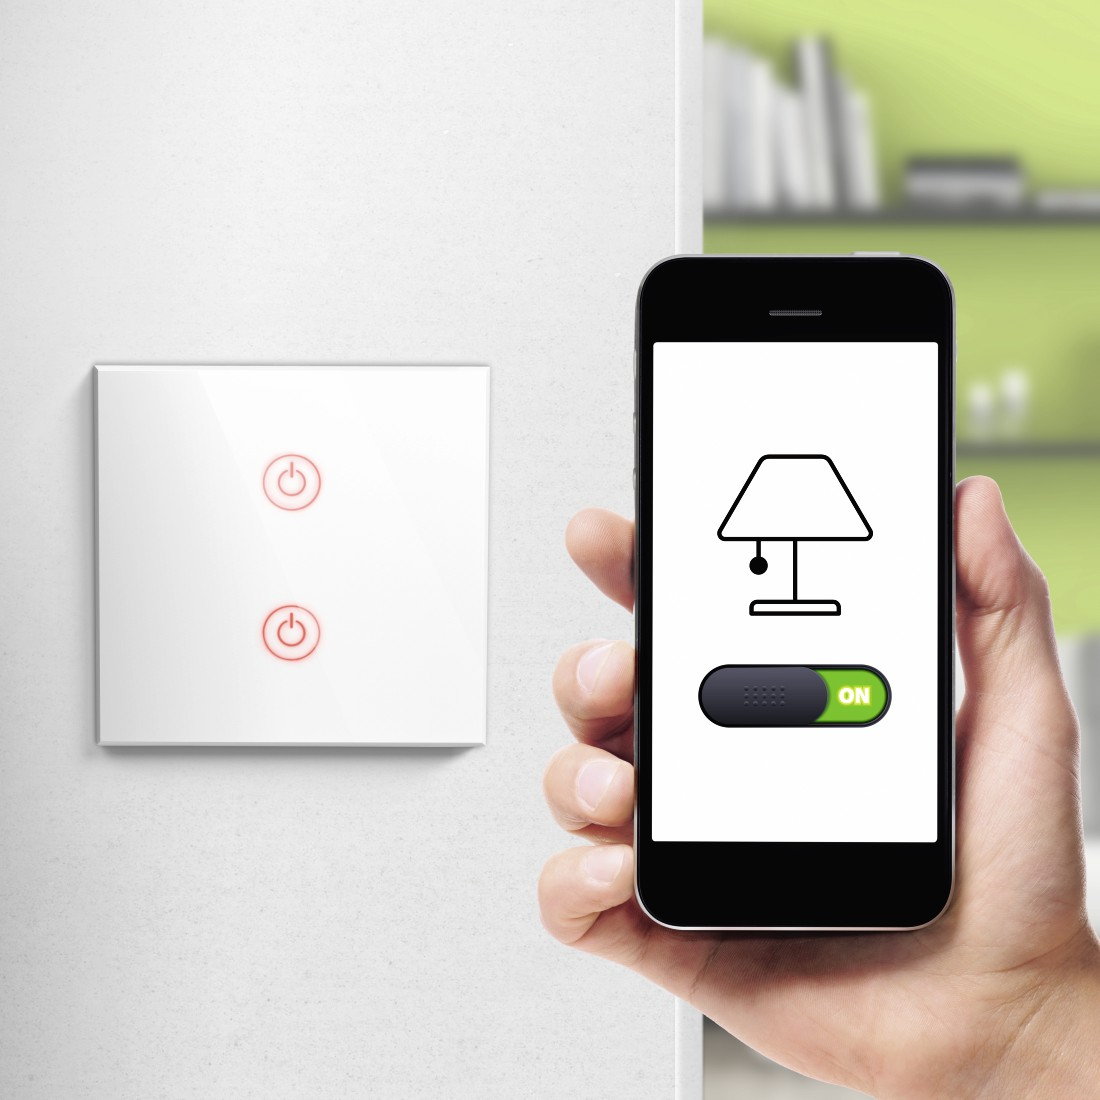 awx High-Res Appliance - Hama, WiFi Touch Wall Switch, Flush-mounted, white